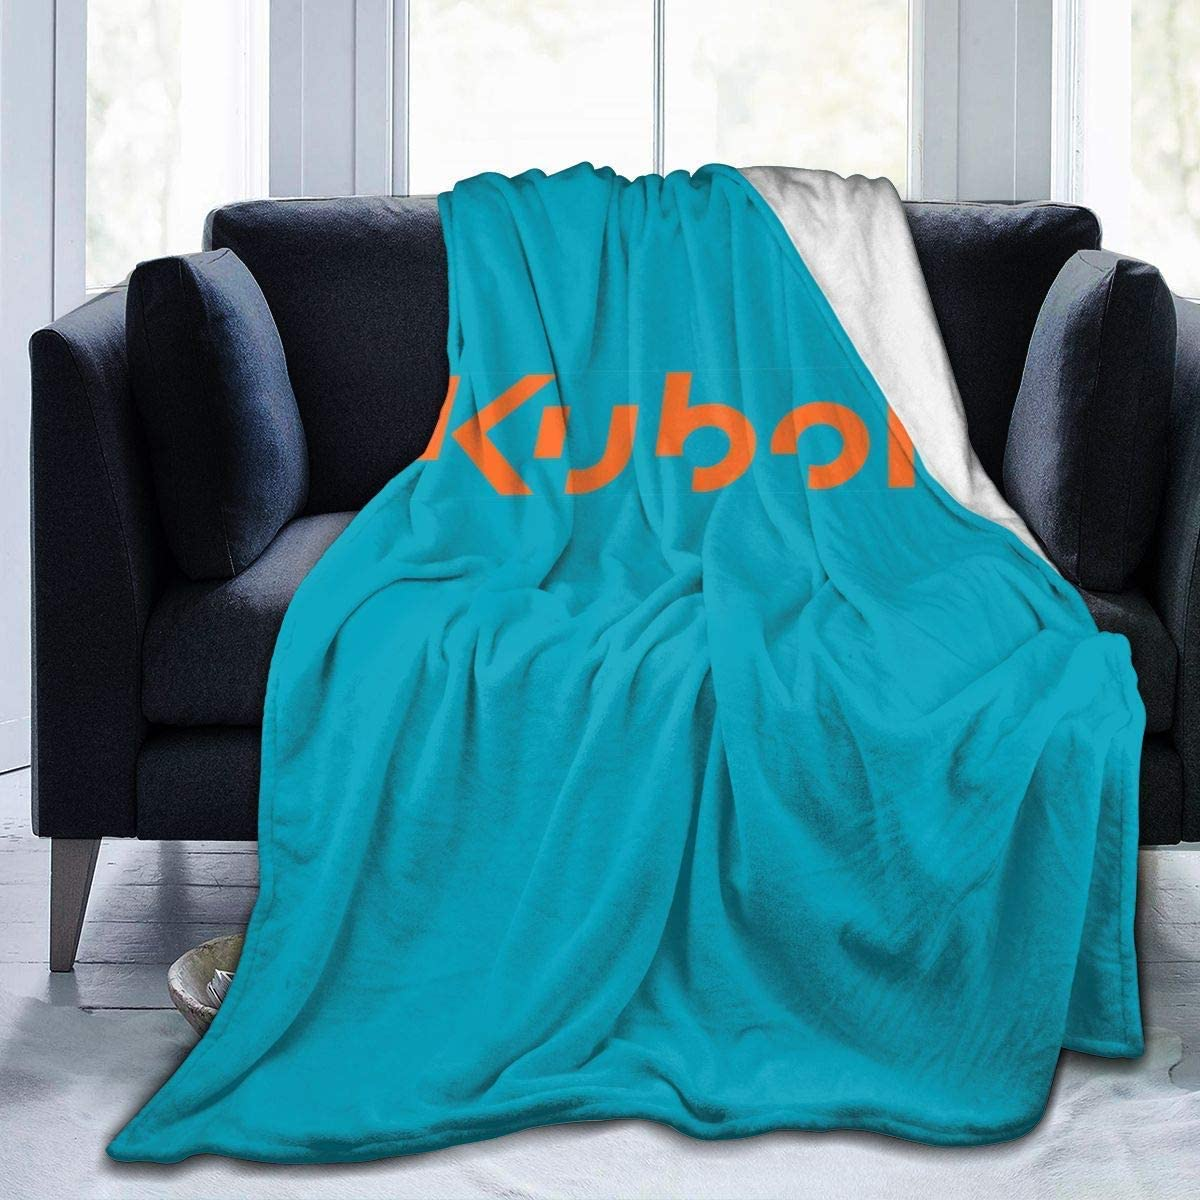 Engshi Mantas para Cama Kubota Tractor Orange Logo Soft and Warm Throw Blanket Digital Printed Ultra-Soft Micro Fleece Blanket